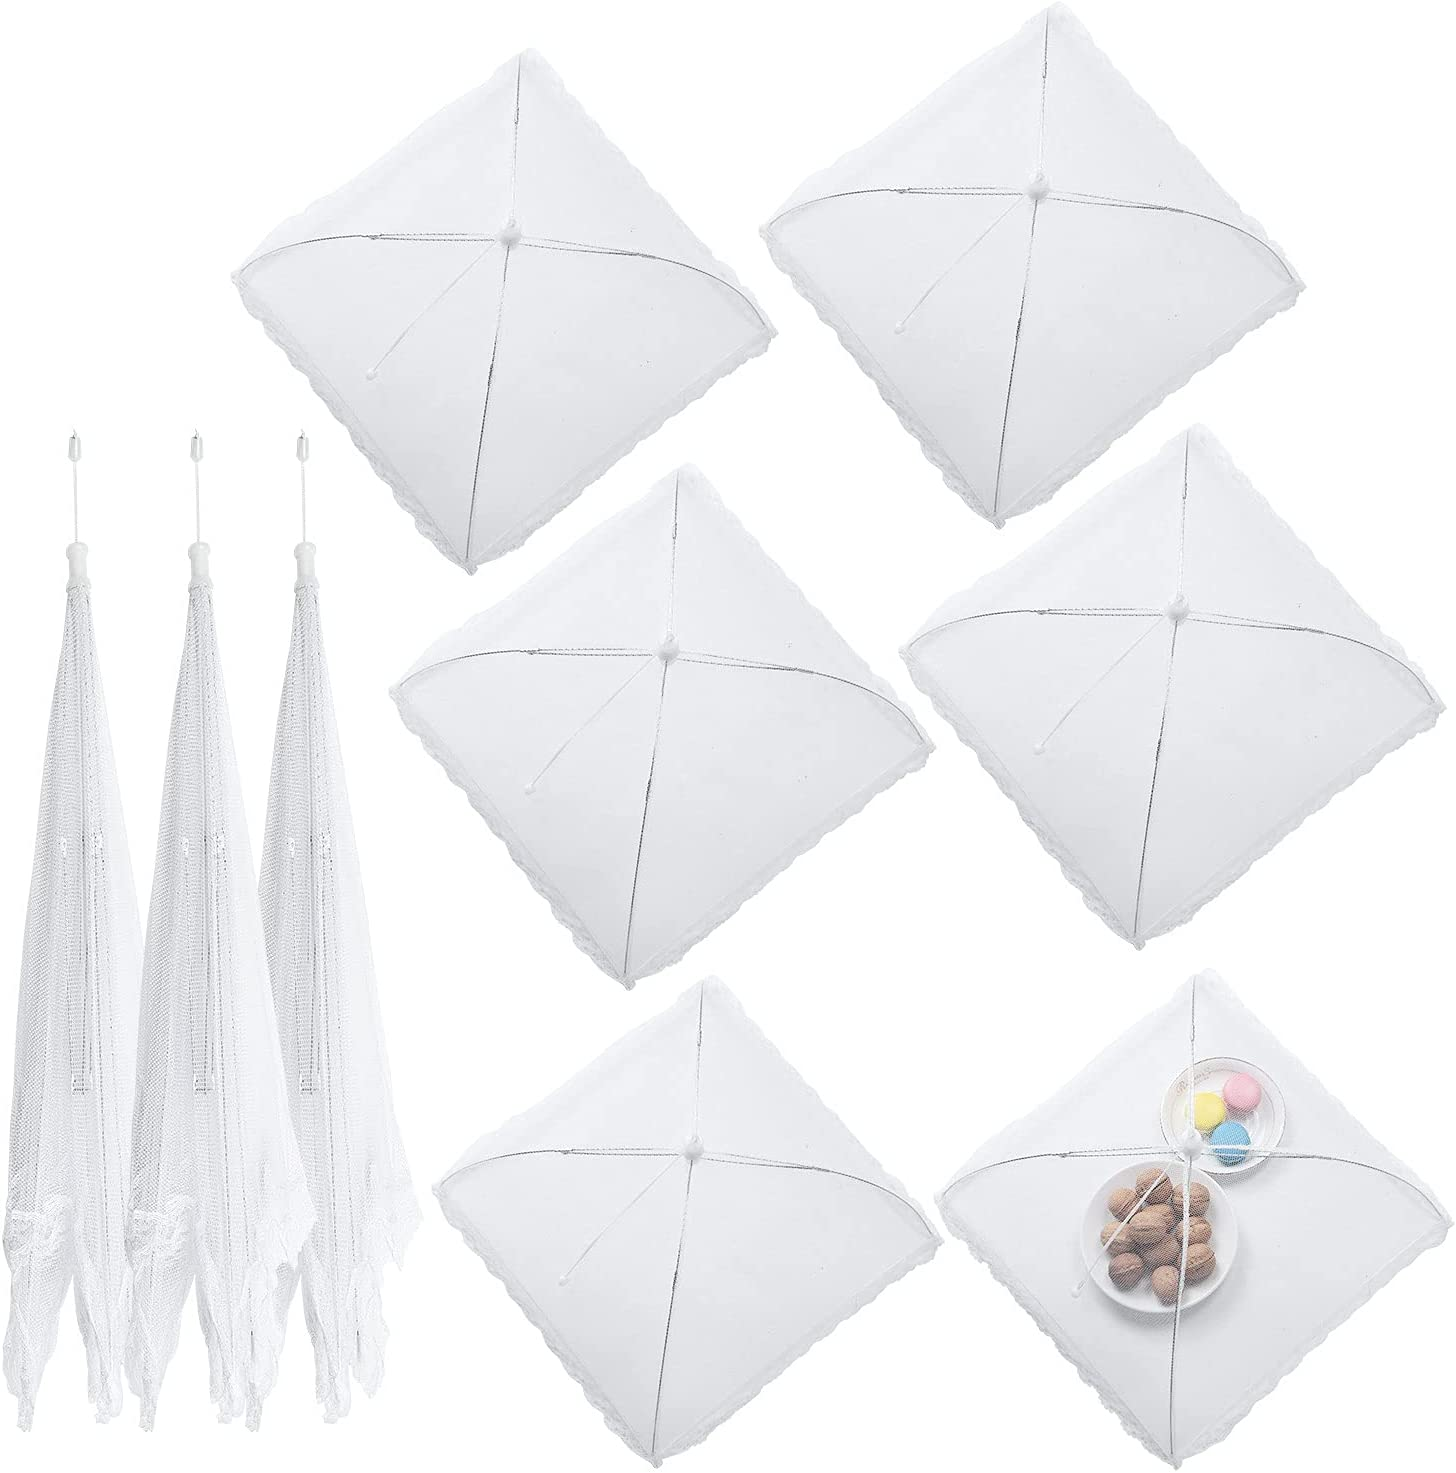 Dallas Mall Food Covers Set of 8 in Special price 14 17 Sizes inch and 2